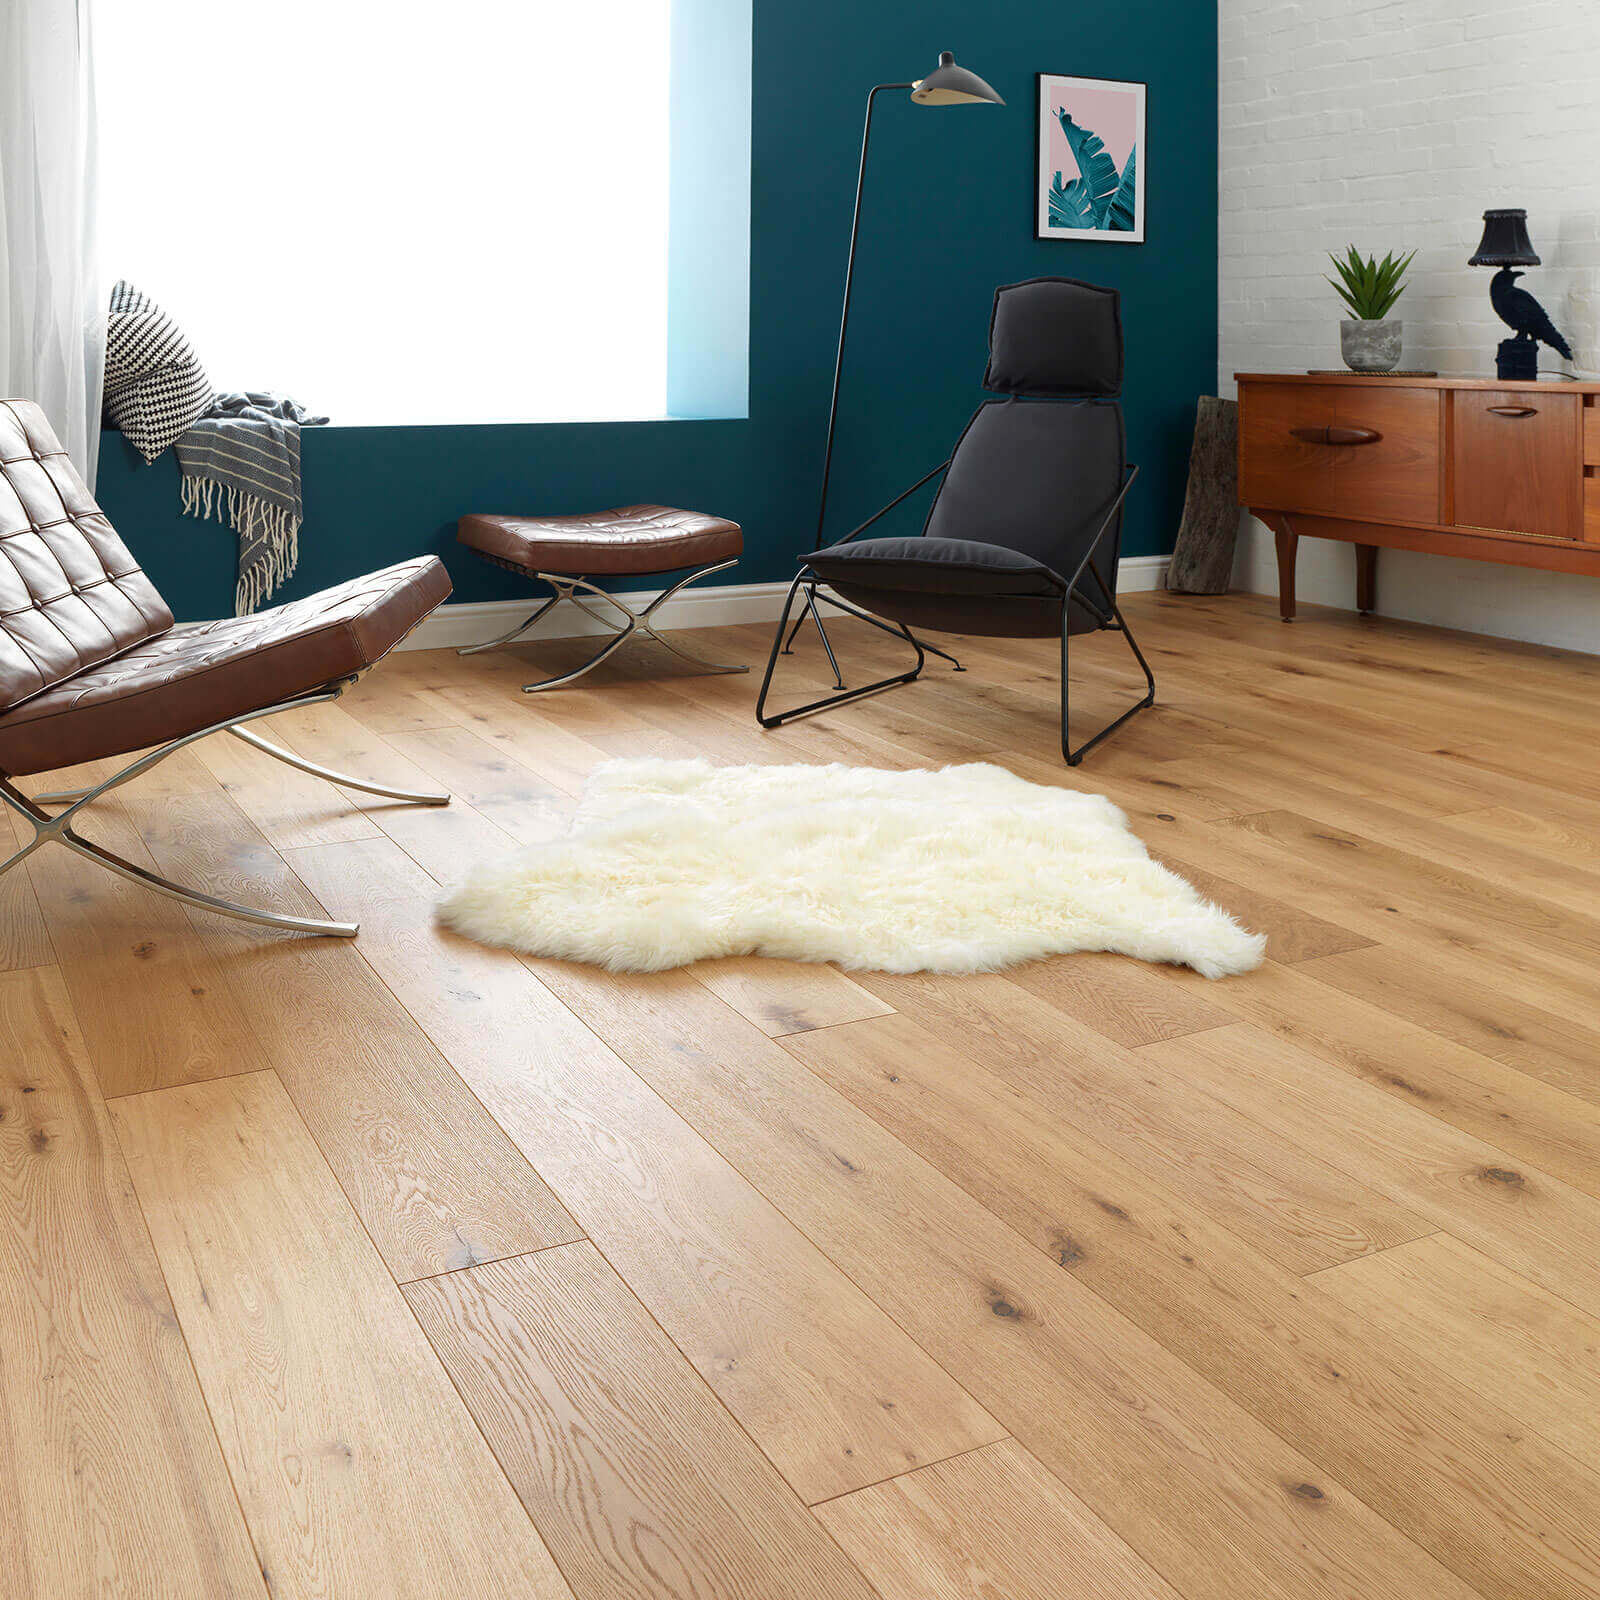 Guides for flooring installation and maintenance